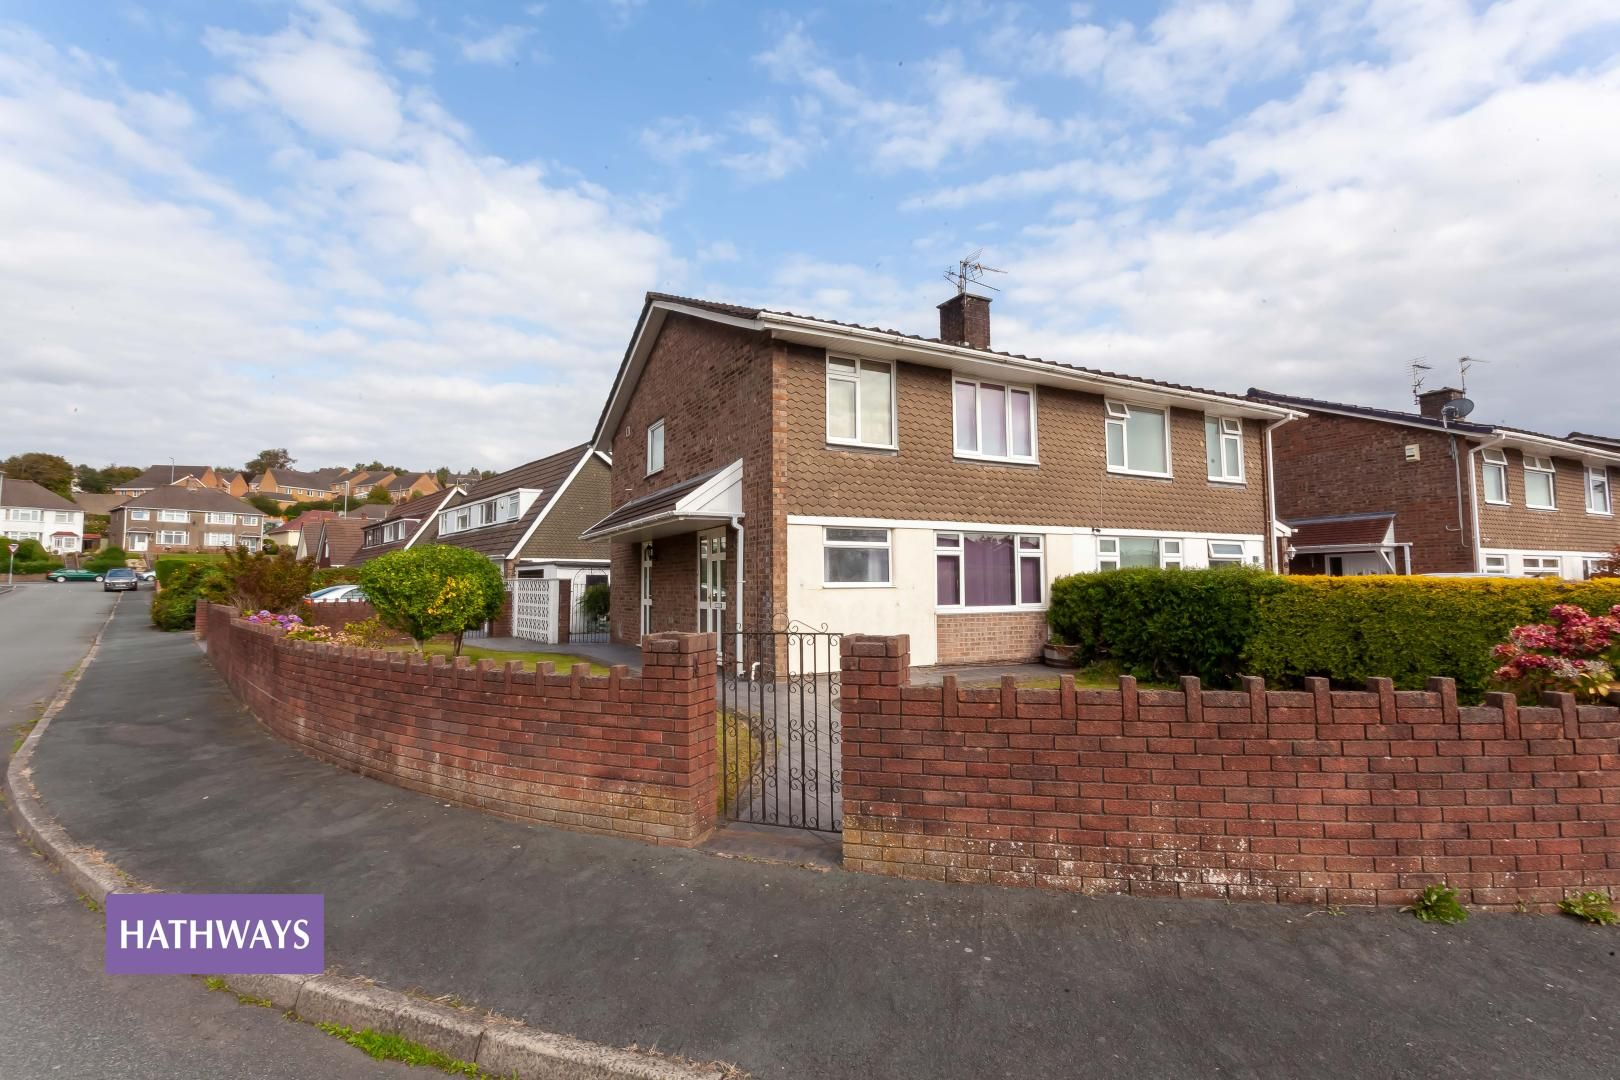 3 bed house for sale in Thornhill Way, NP10